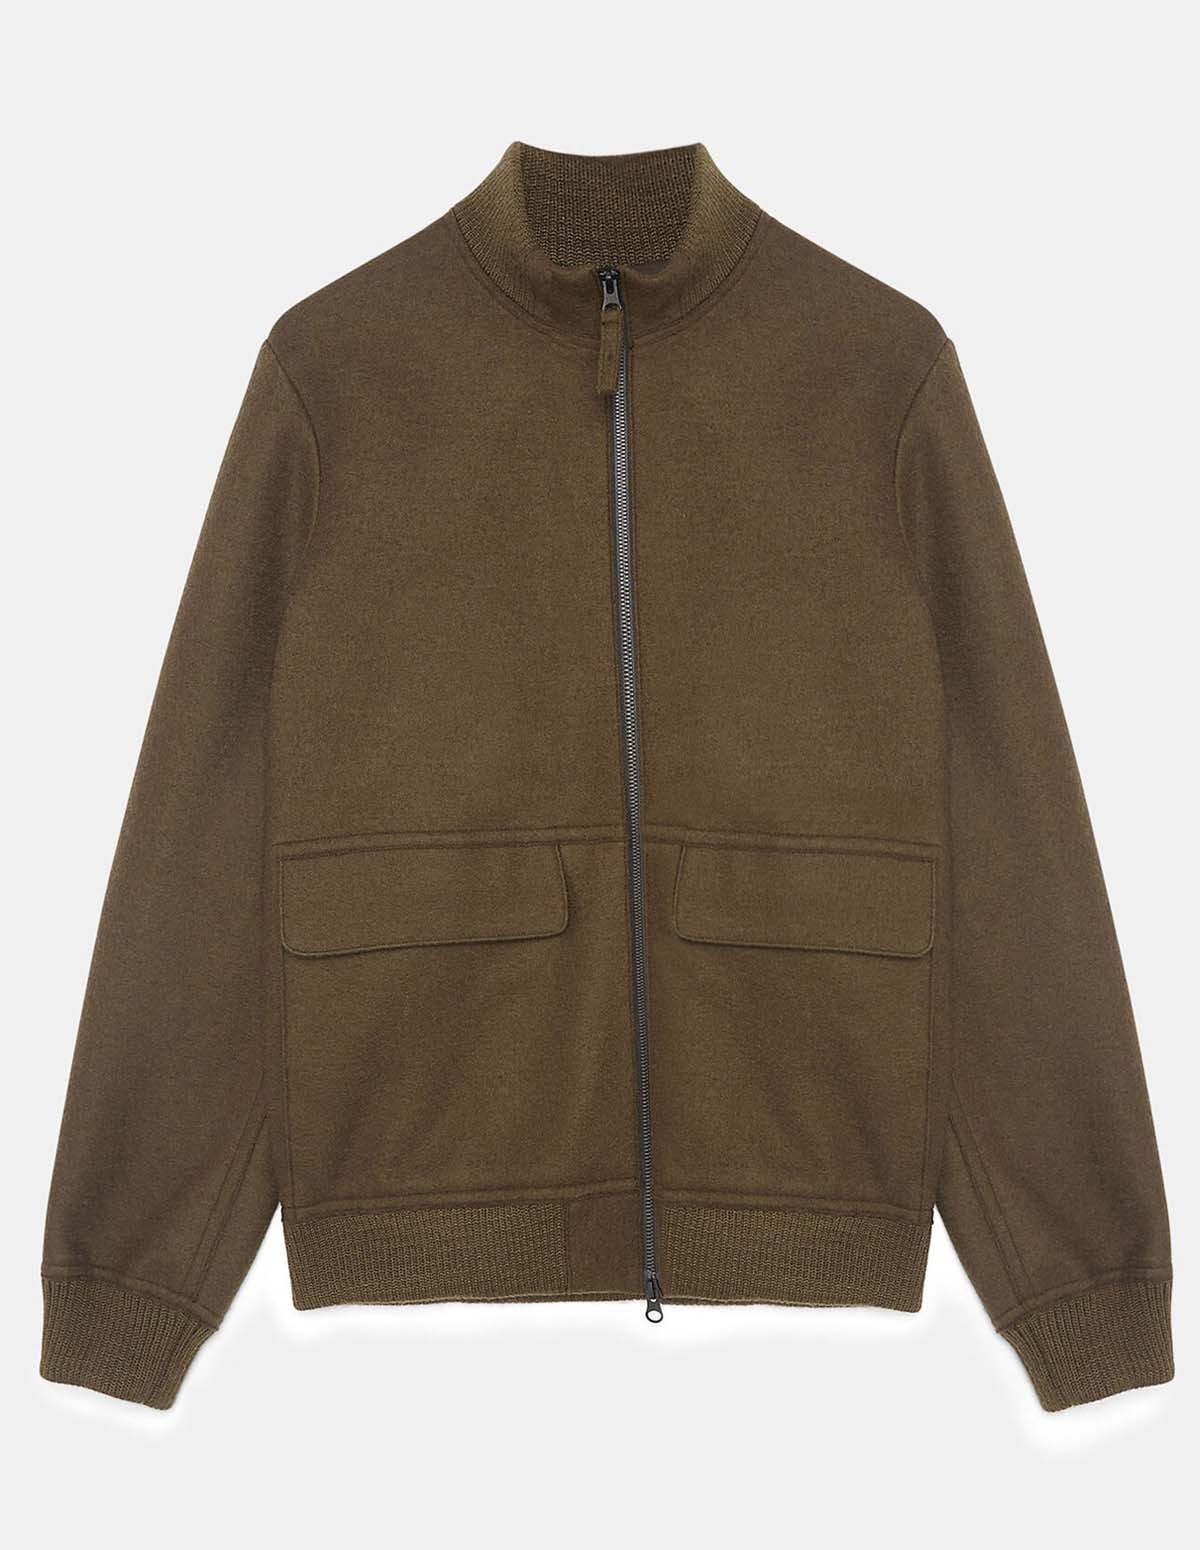 Aspesi New Astor Jacket - MILITARY